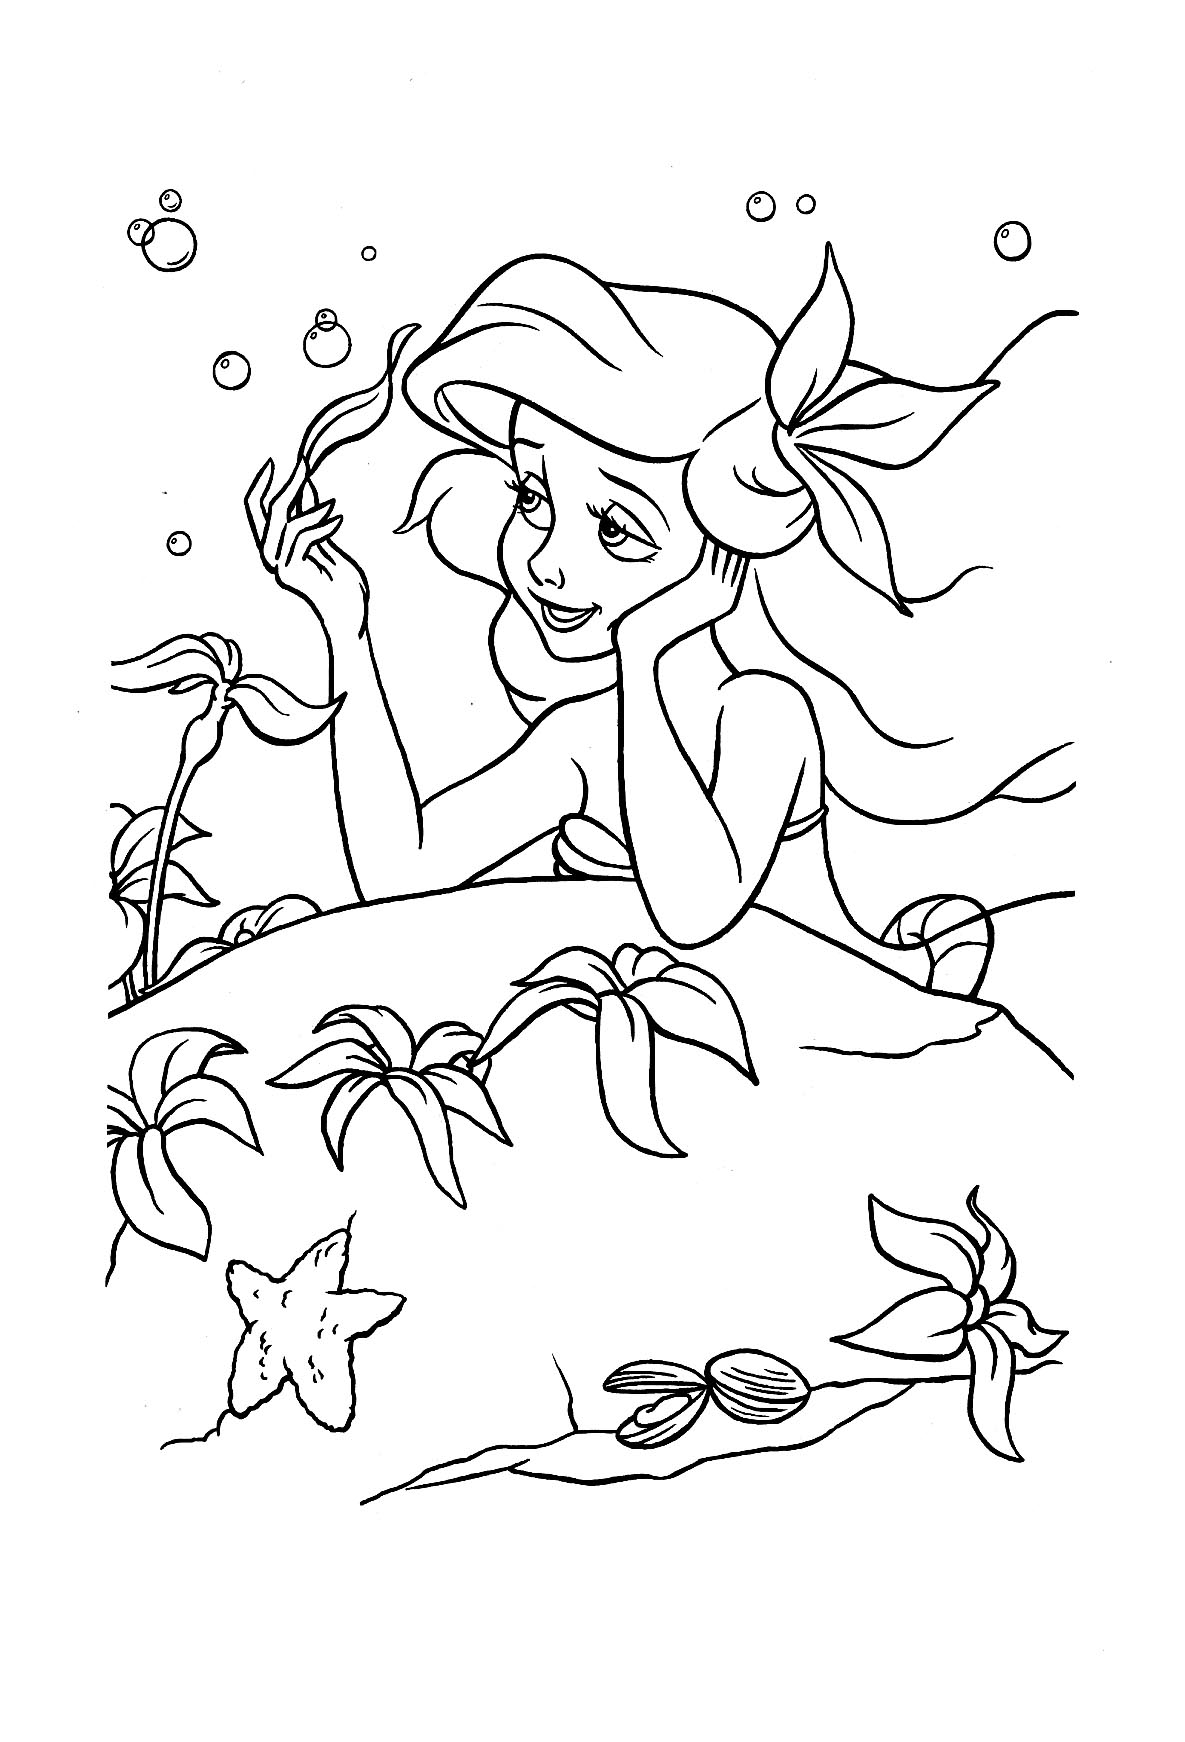 The Little Mermaid To Print The Little Mermaid Kids Coloring Pages